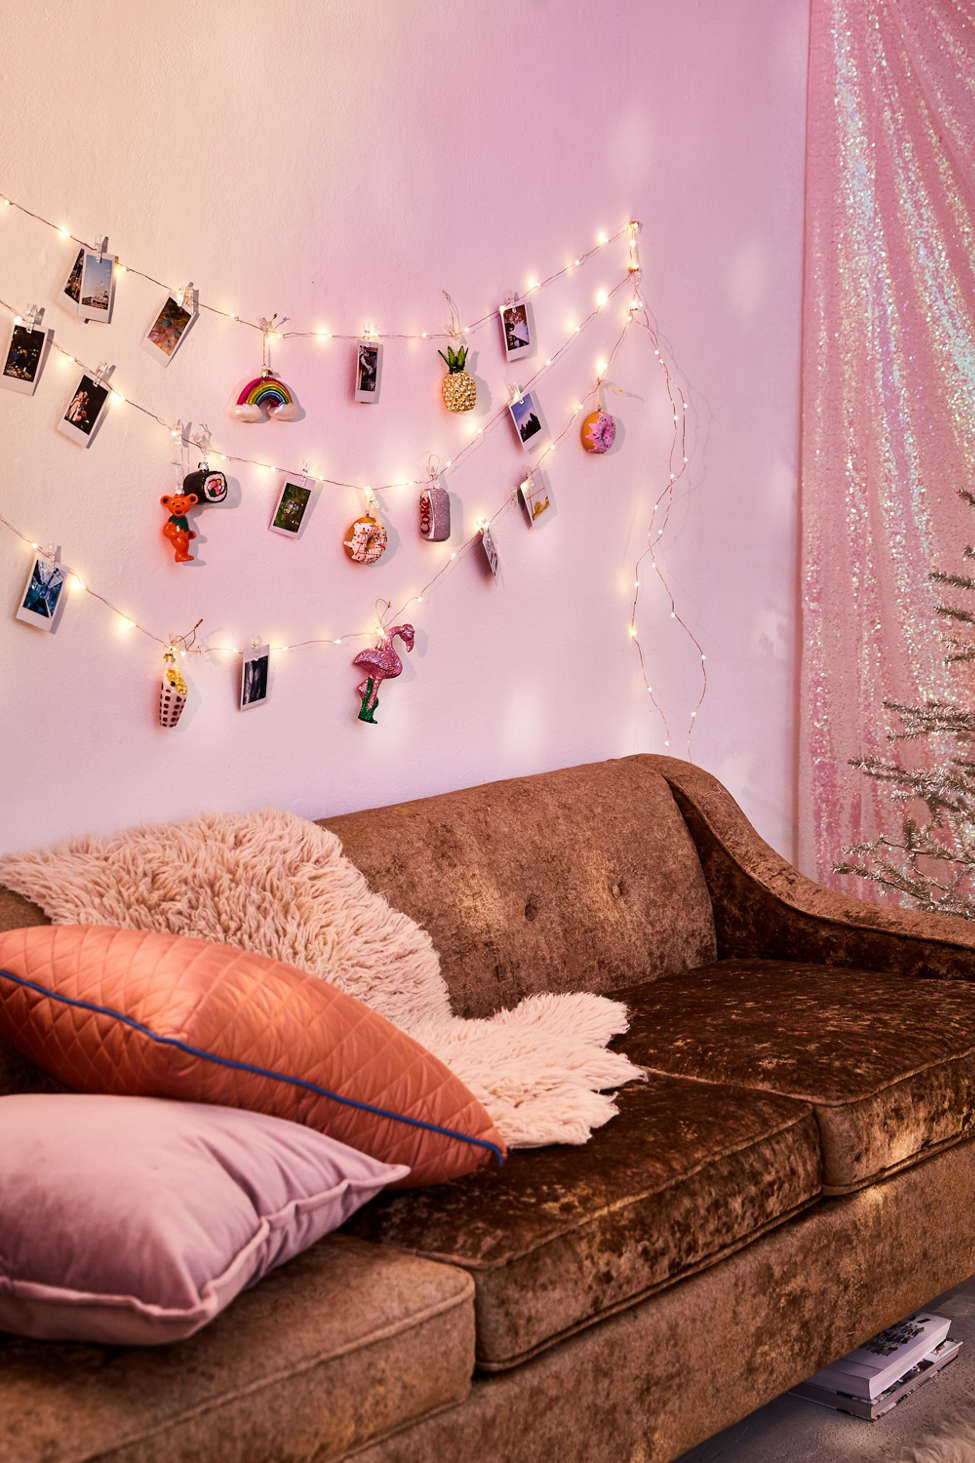 Aesthetic Bedroom With Fairy Lights